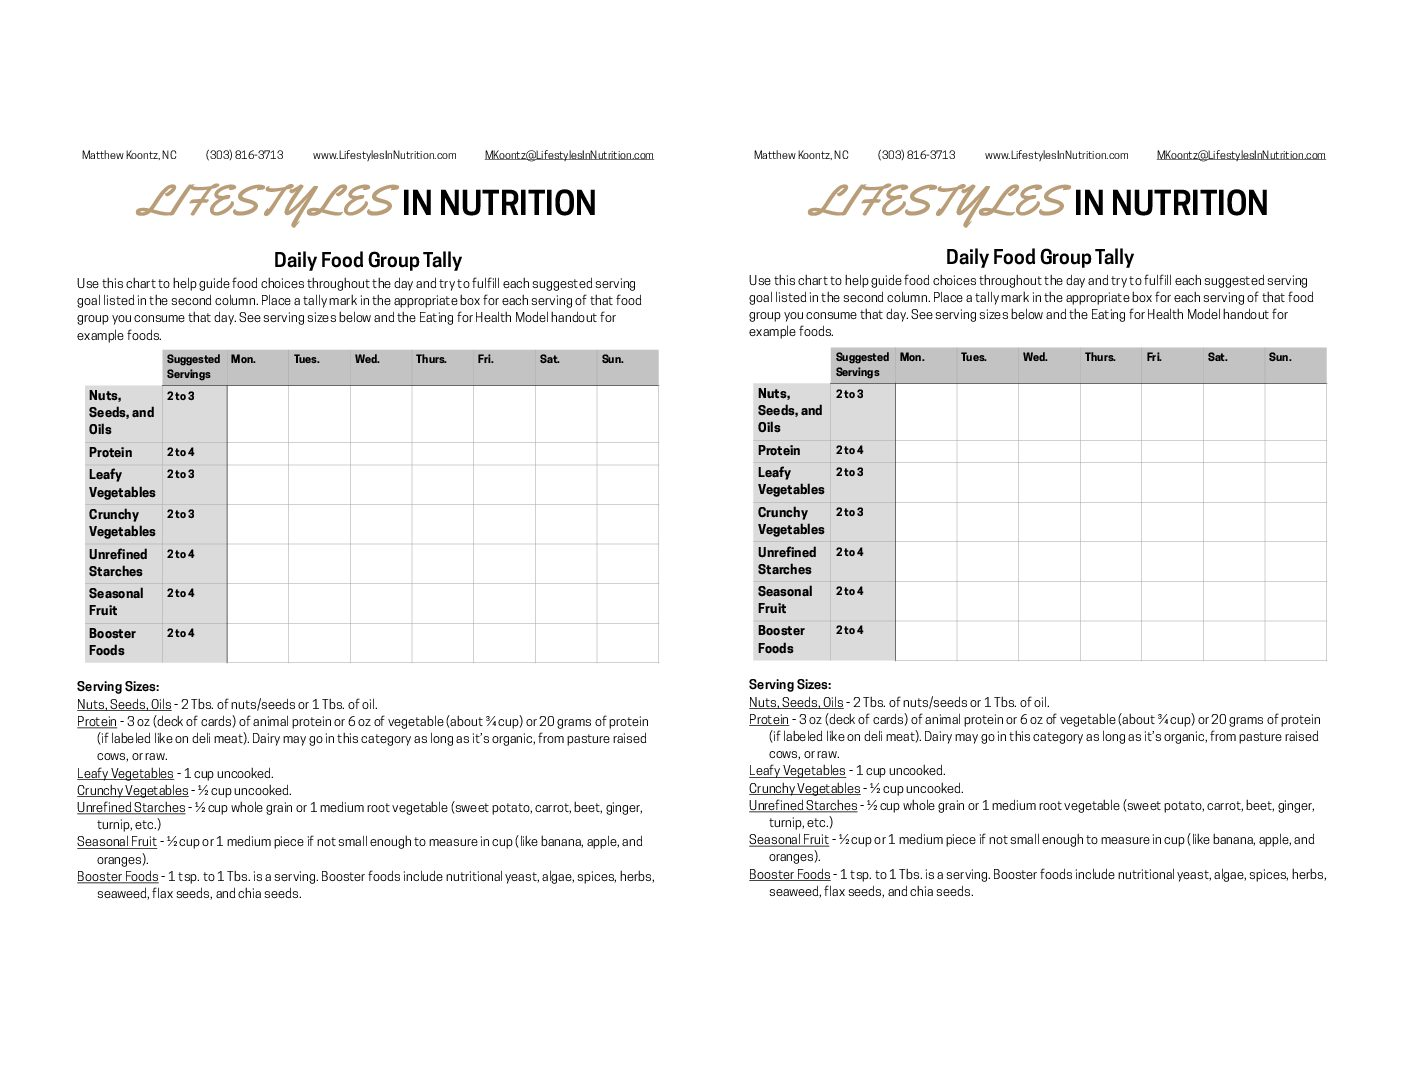 Weekly Eating For Health Food Group Tally Worksheet